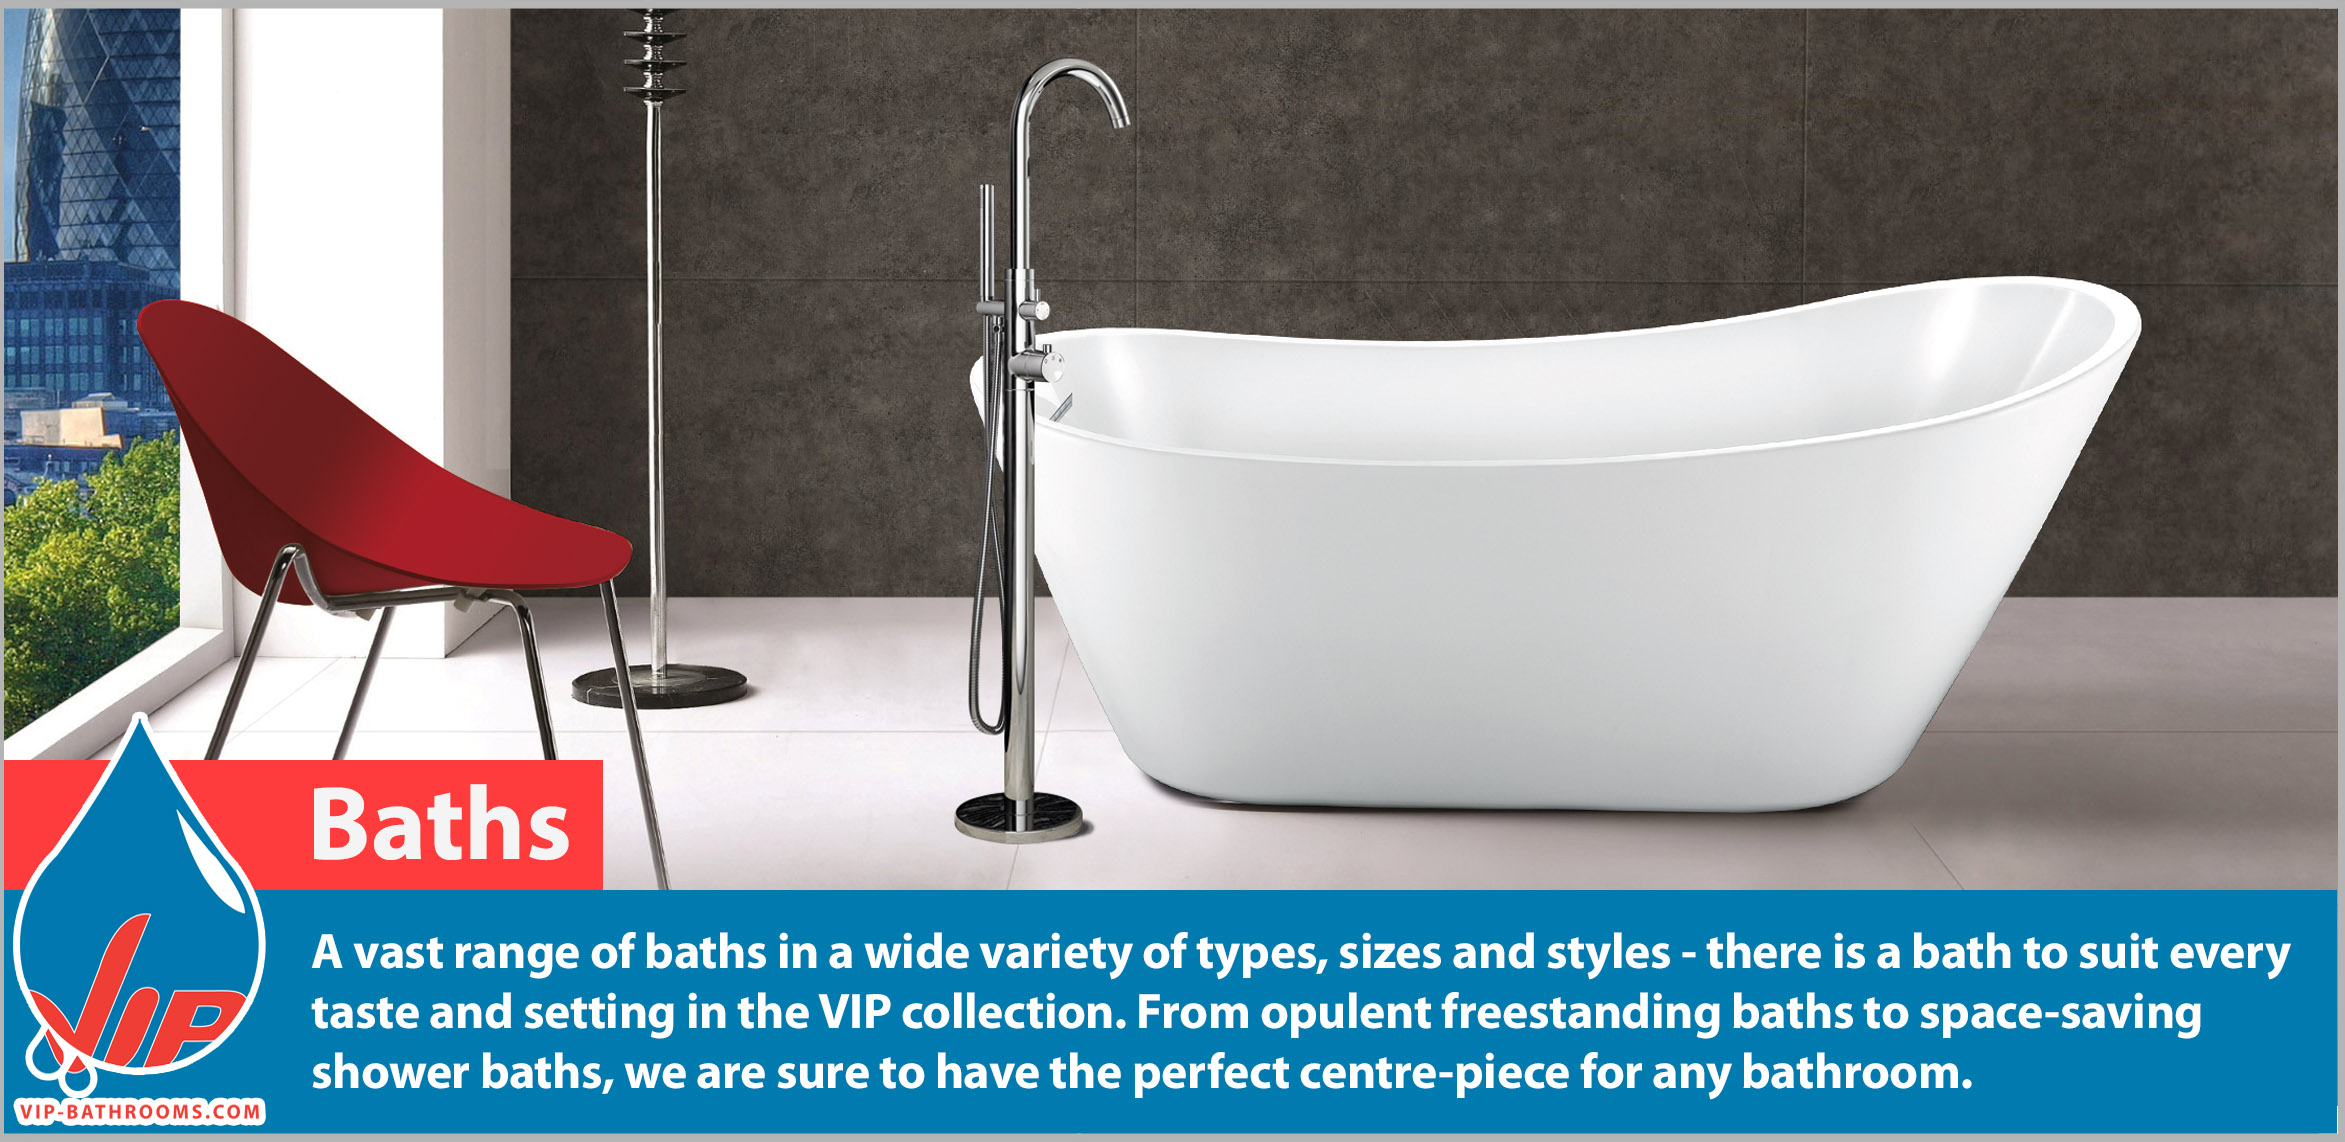 Truly luxurious baths by VIP Bathrooms. A vast range of baths in a wide variety of types, sizes and styles - there is a bath to suit every taste and setting in the VIP collection. From opulent freestanding baths to space-saving shower baths, we are sure to have the perfect centre-piece for any bathroom.